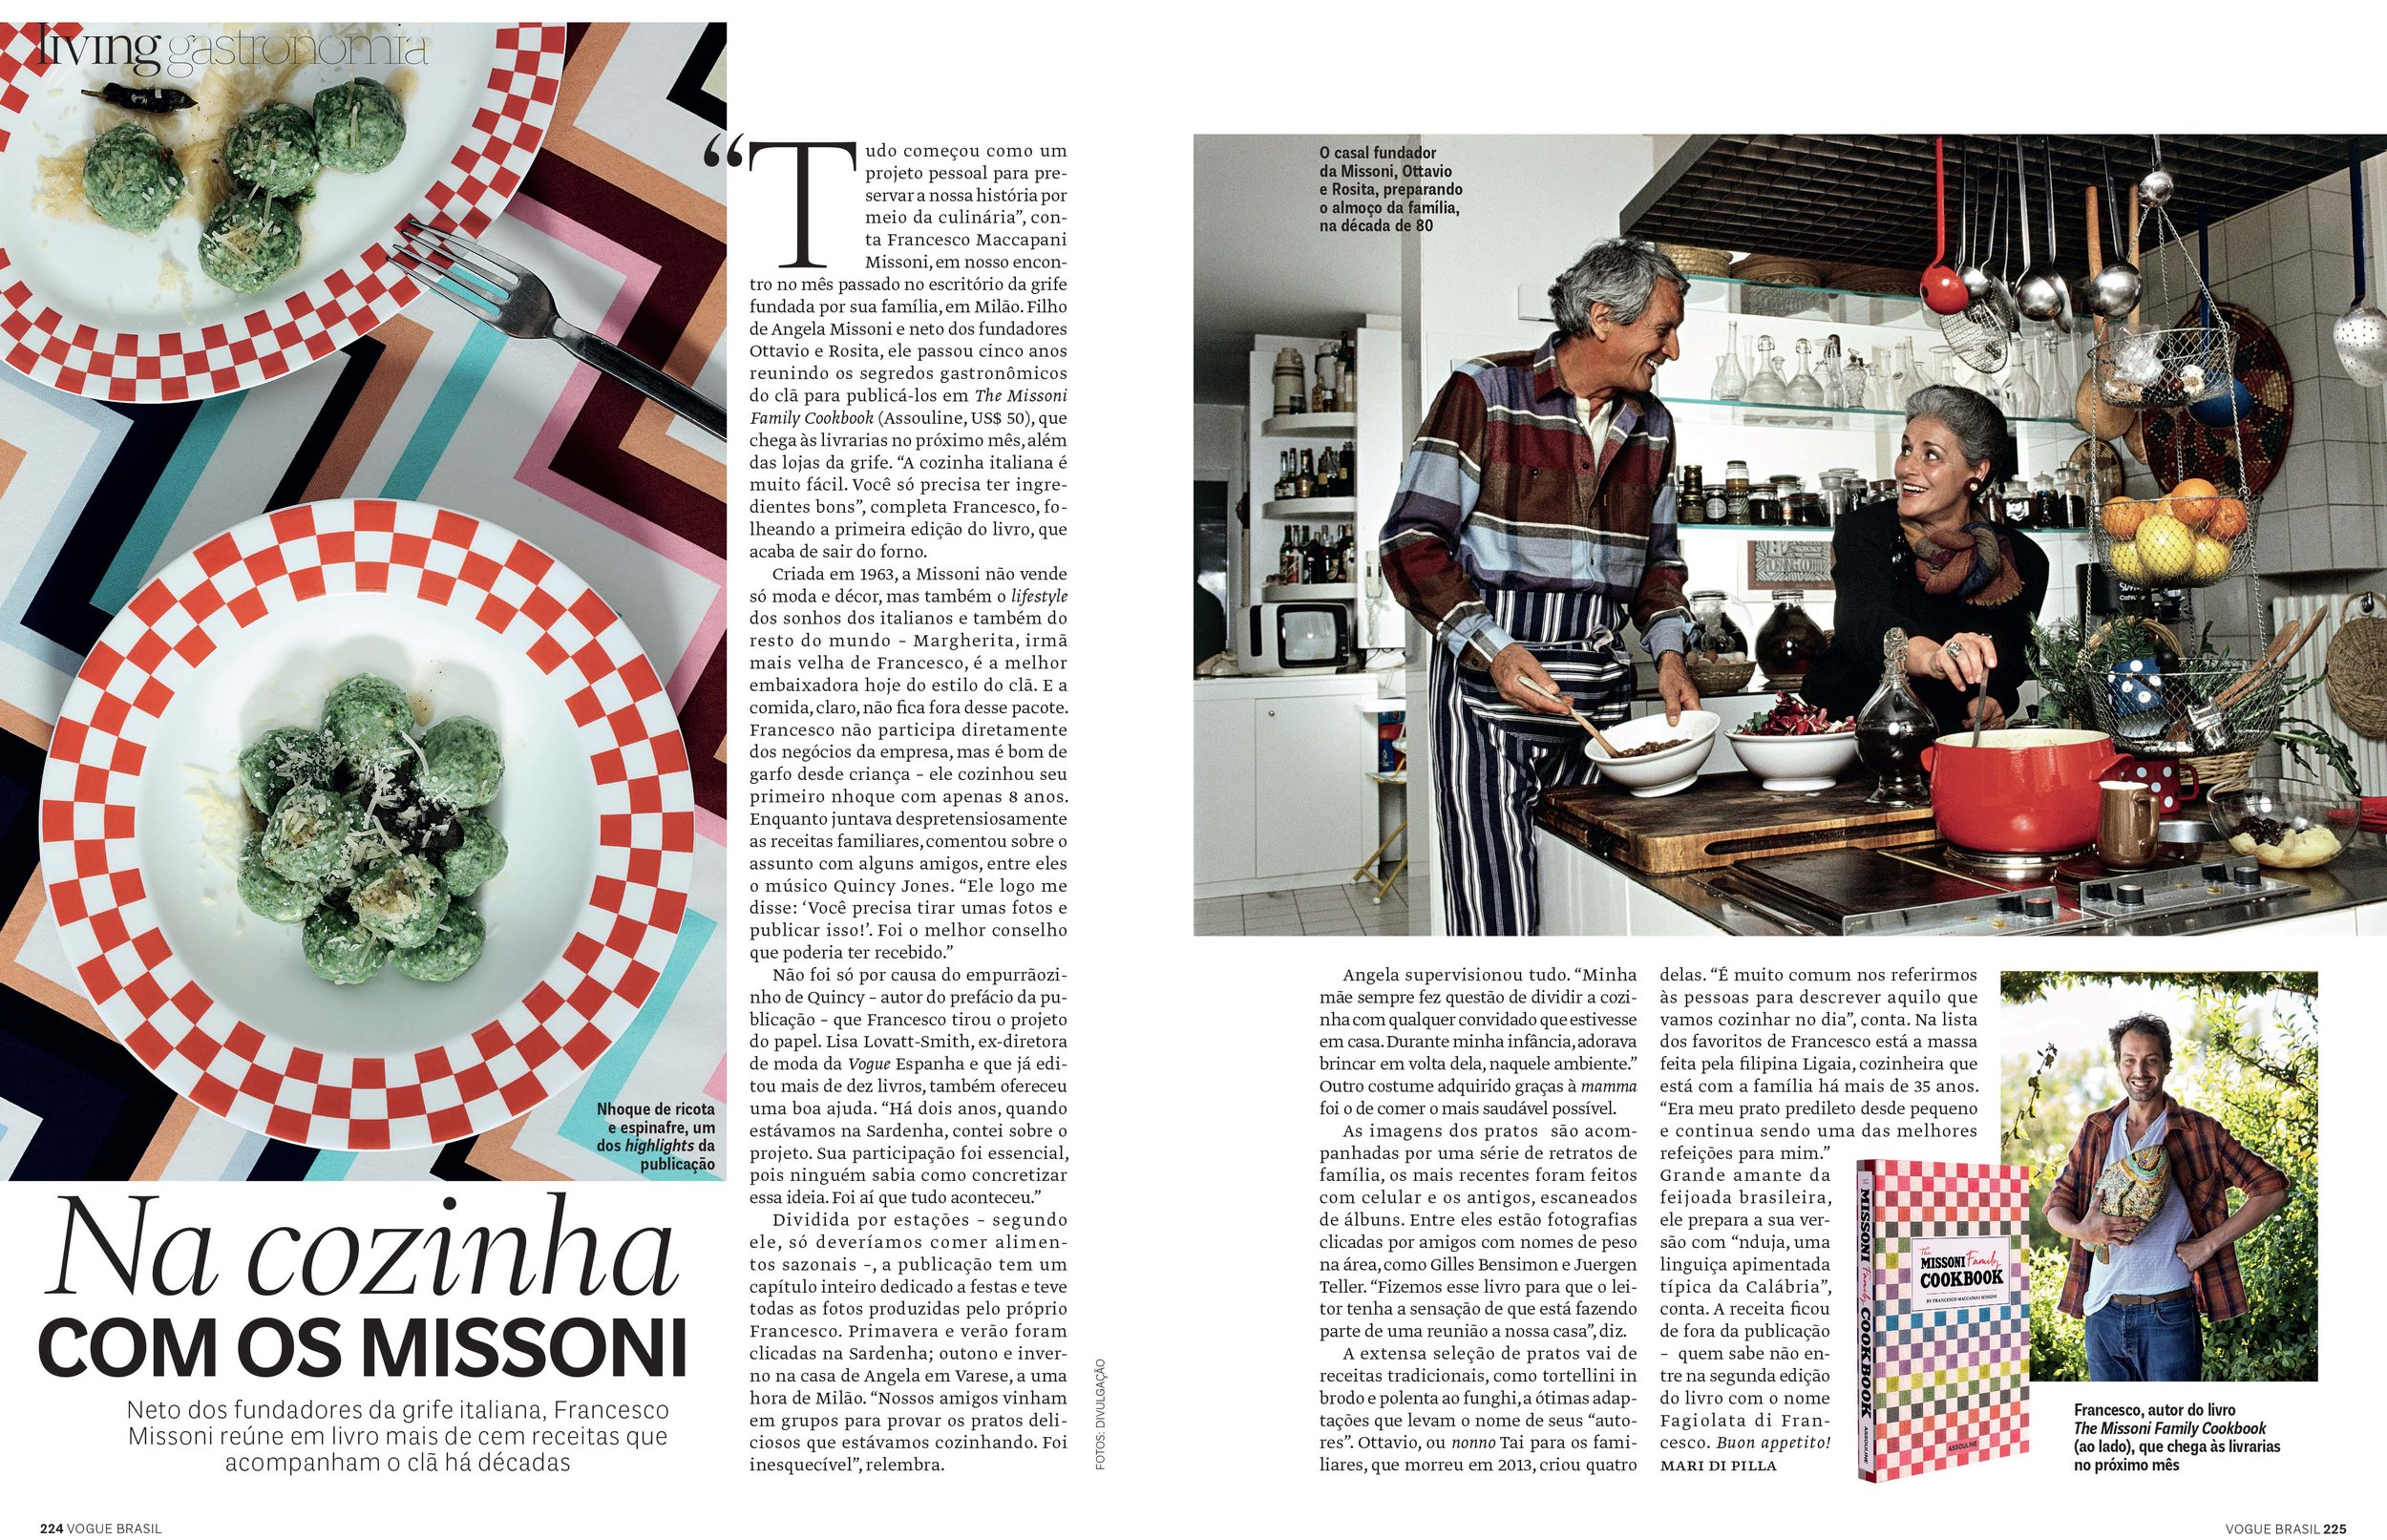 mari di pilla vogue Brasil missoni cookbook.jpg